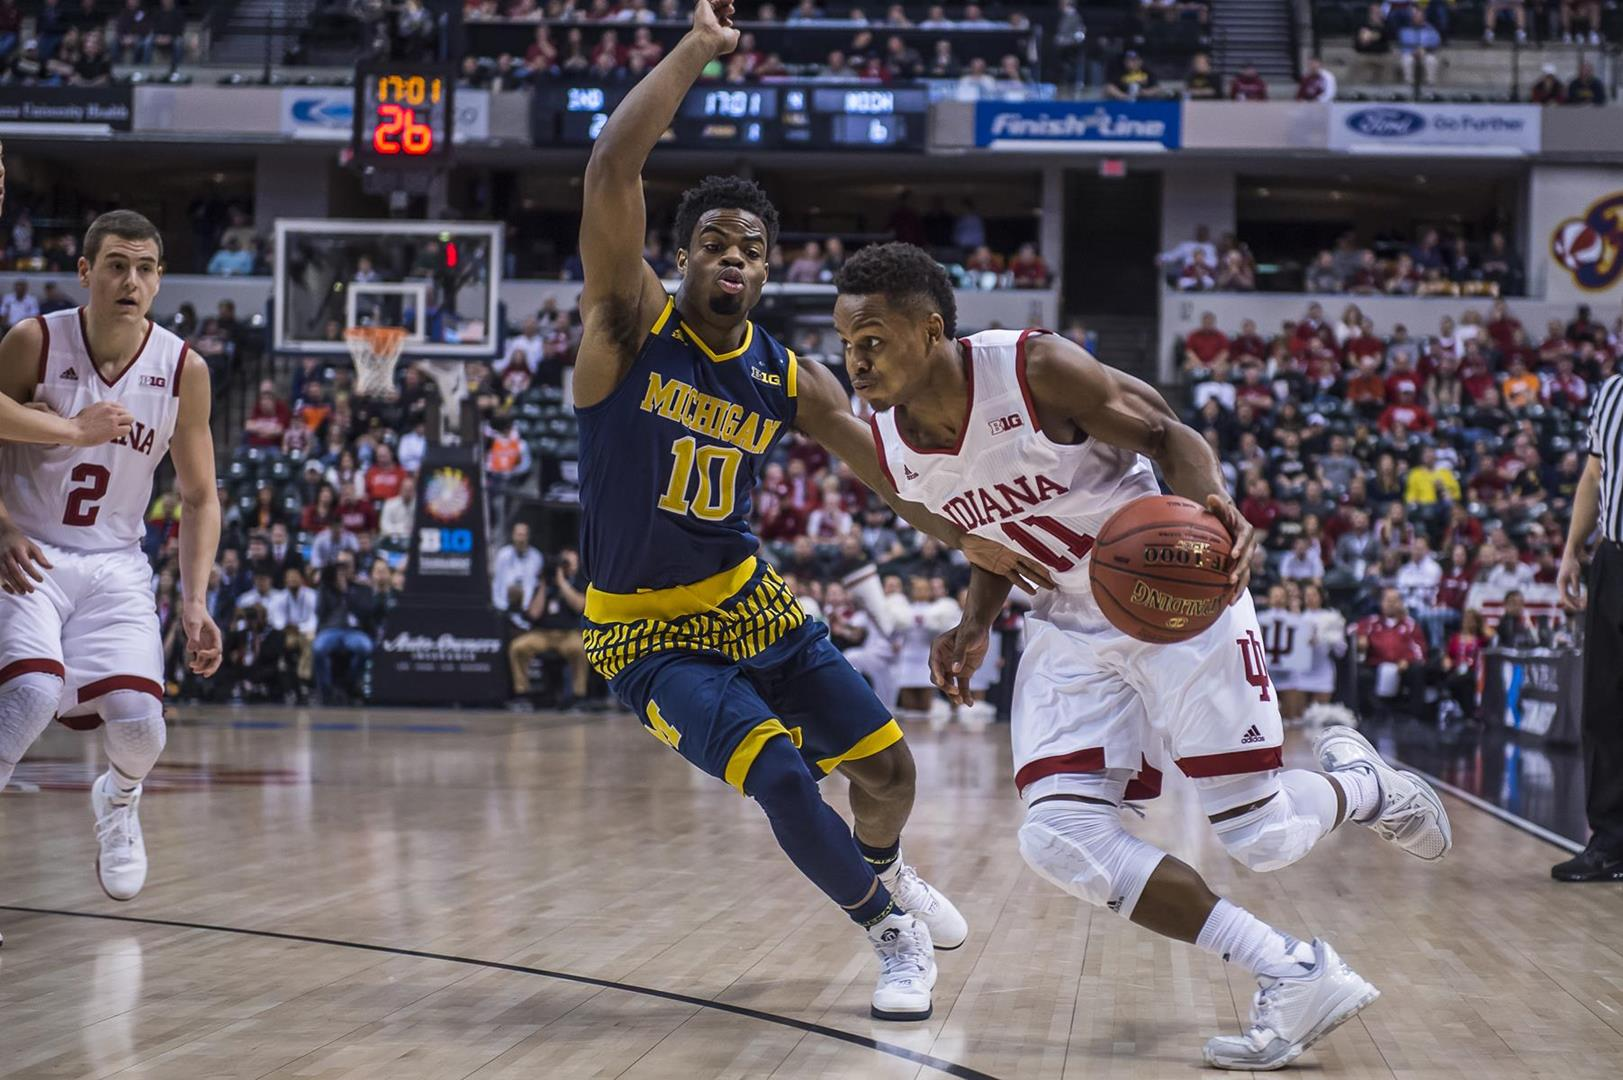 Sports Indiana Continues to Grow and Diversify by Welcoming Tournament Planners